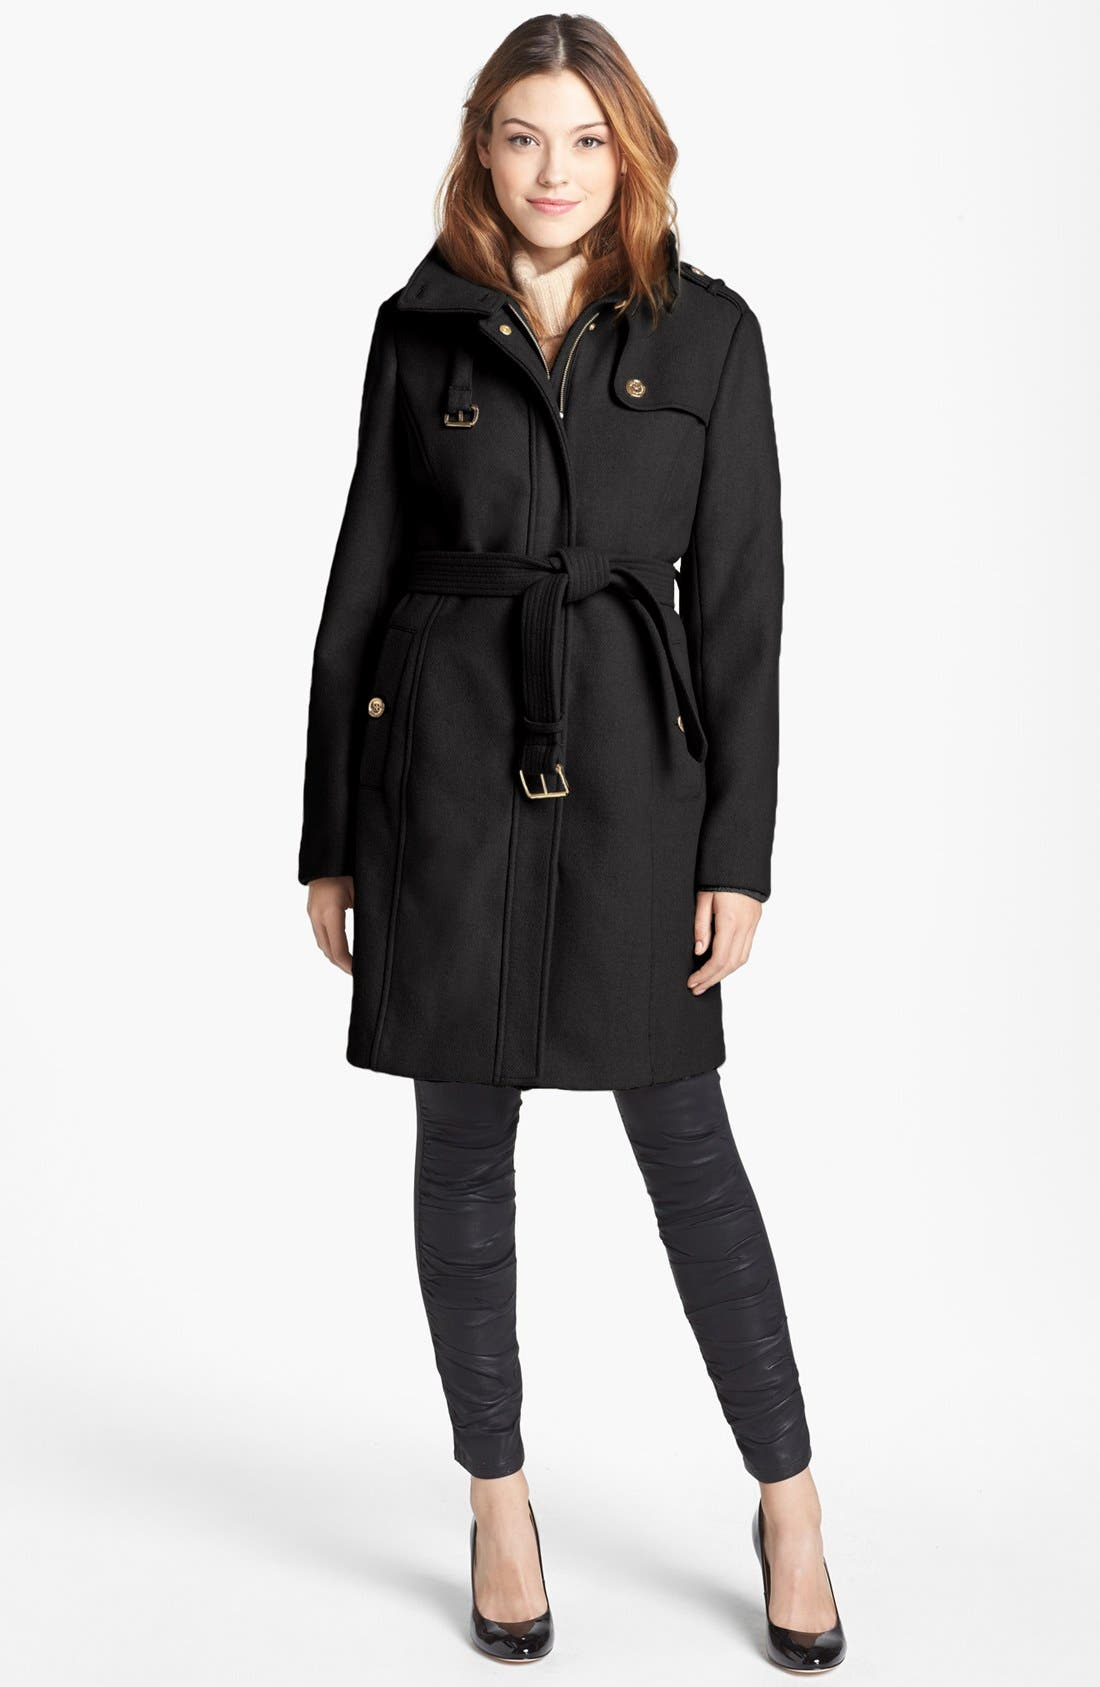 Main Image - MICHAEL Michael Kors Wool Blend Military Trench Coat (Petite) (Nordstrom Exclusive)